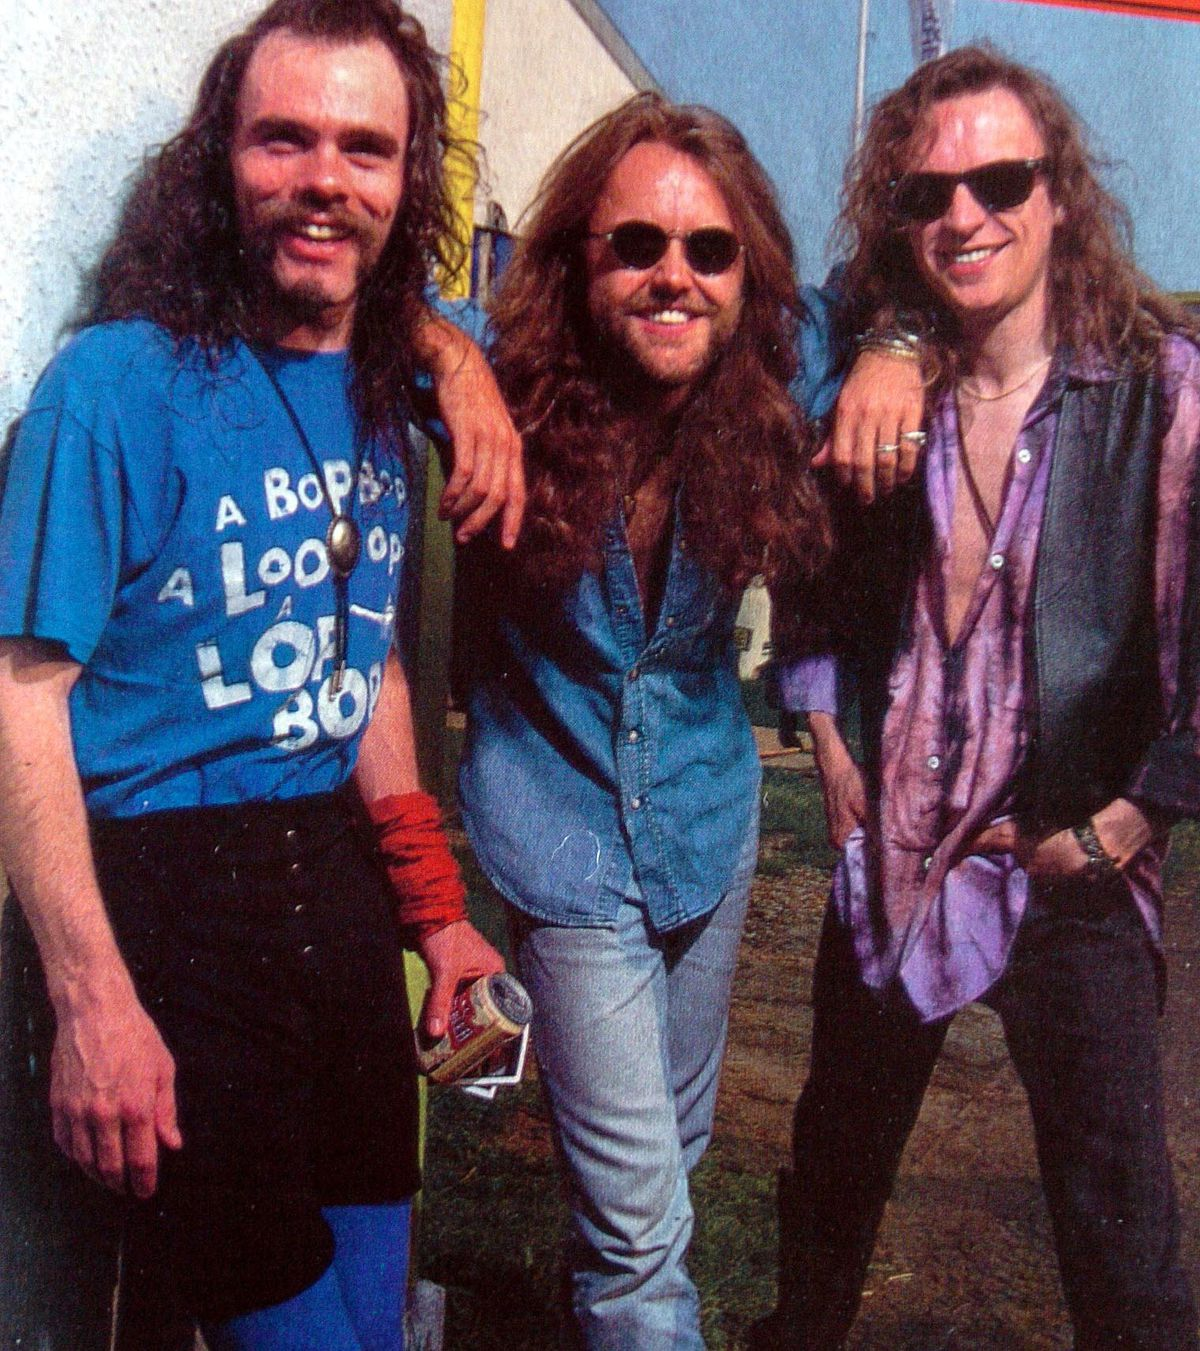 Diamond Head's former member Sean Harris, left, and frontman Brian Tatler, right, with Metallica's Lars Ulrich in 1993